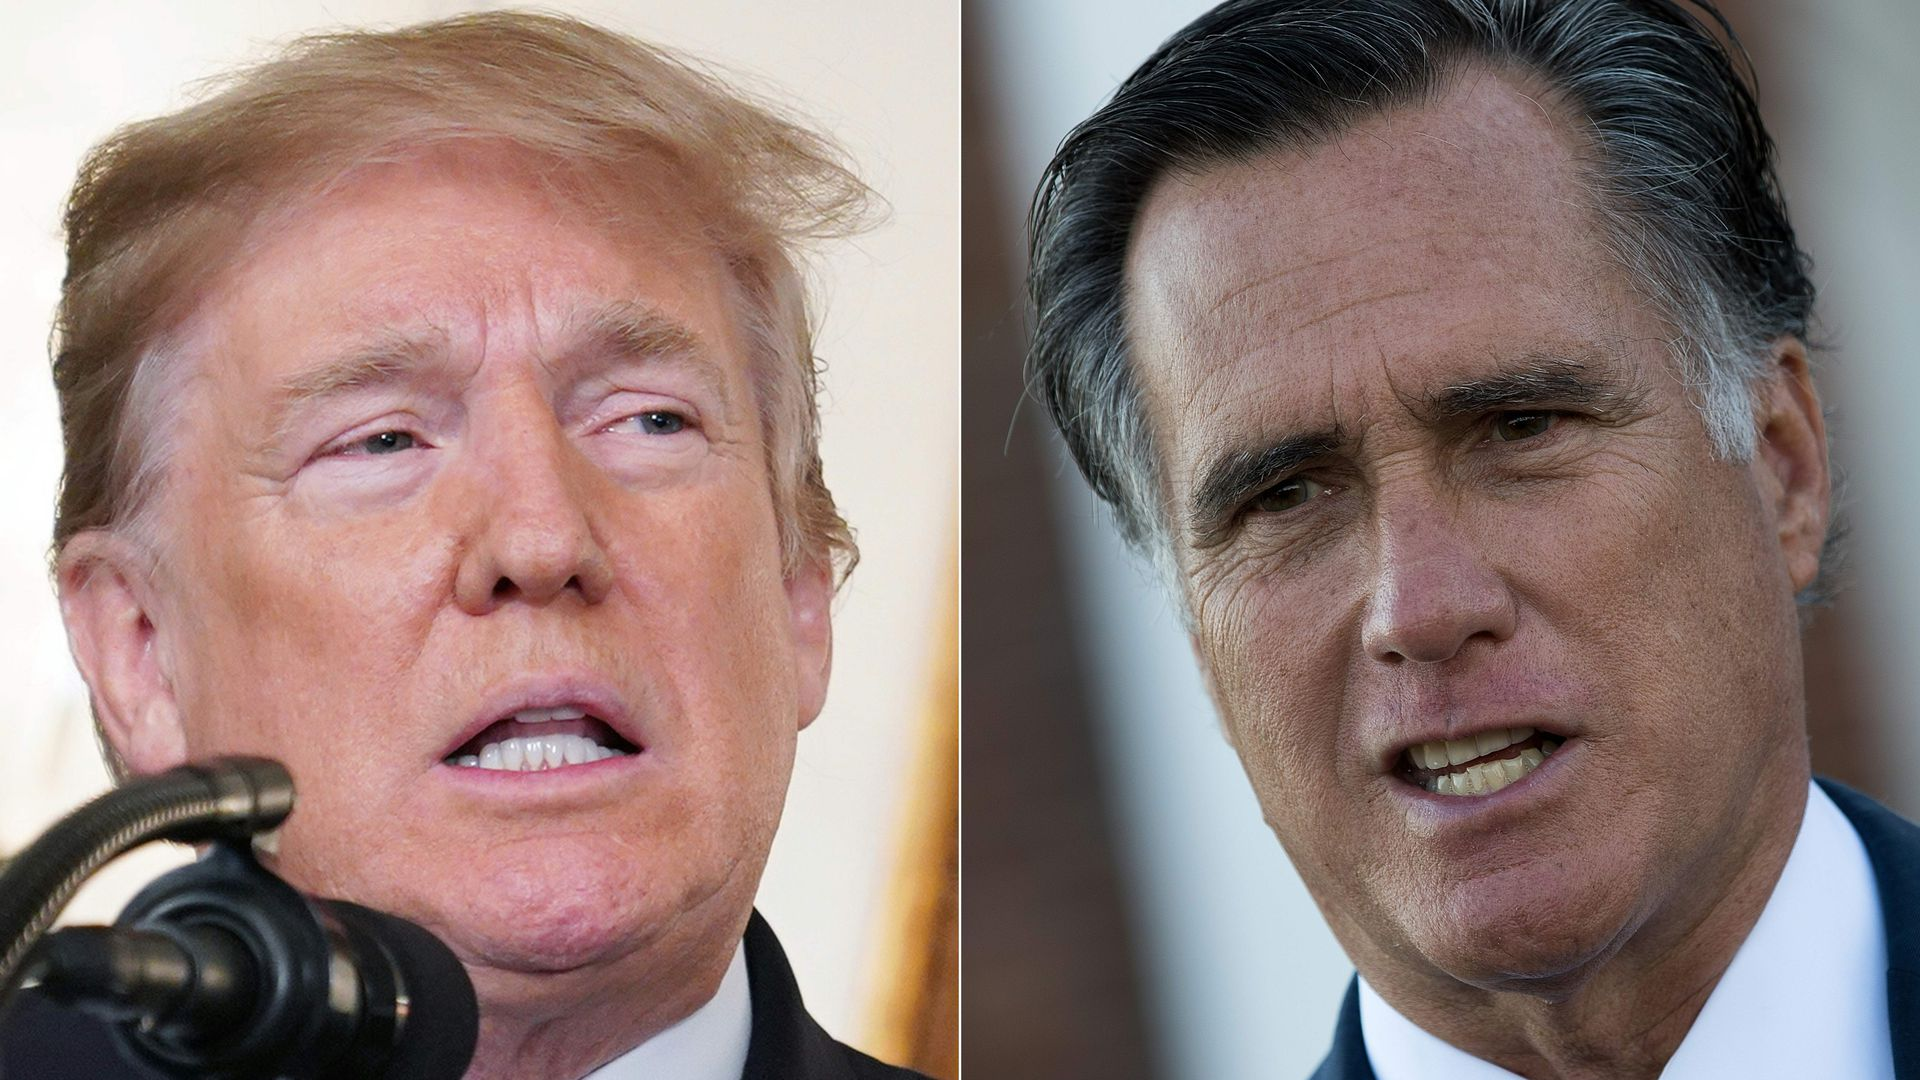 A split image of Donald Trump and Mitt Romney